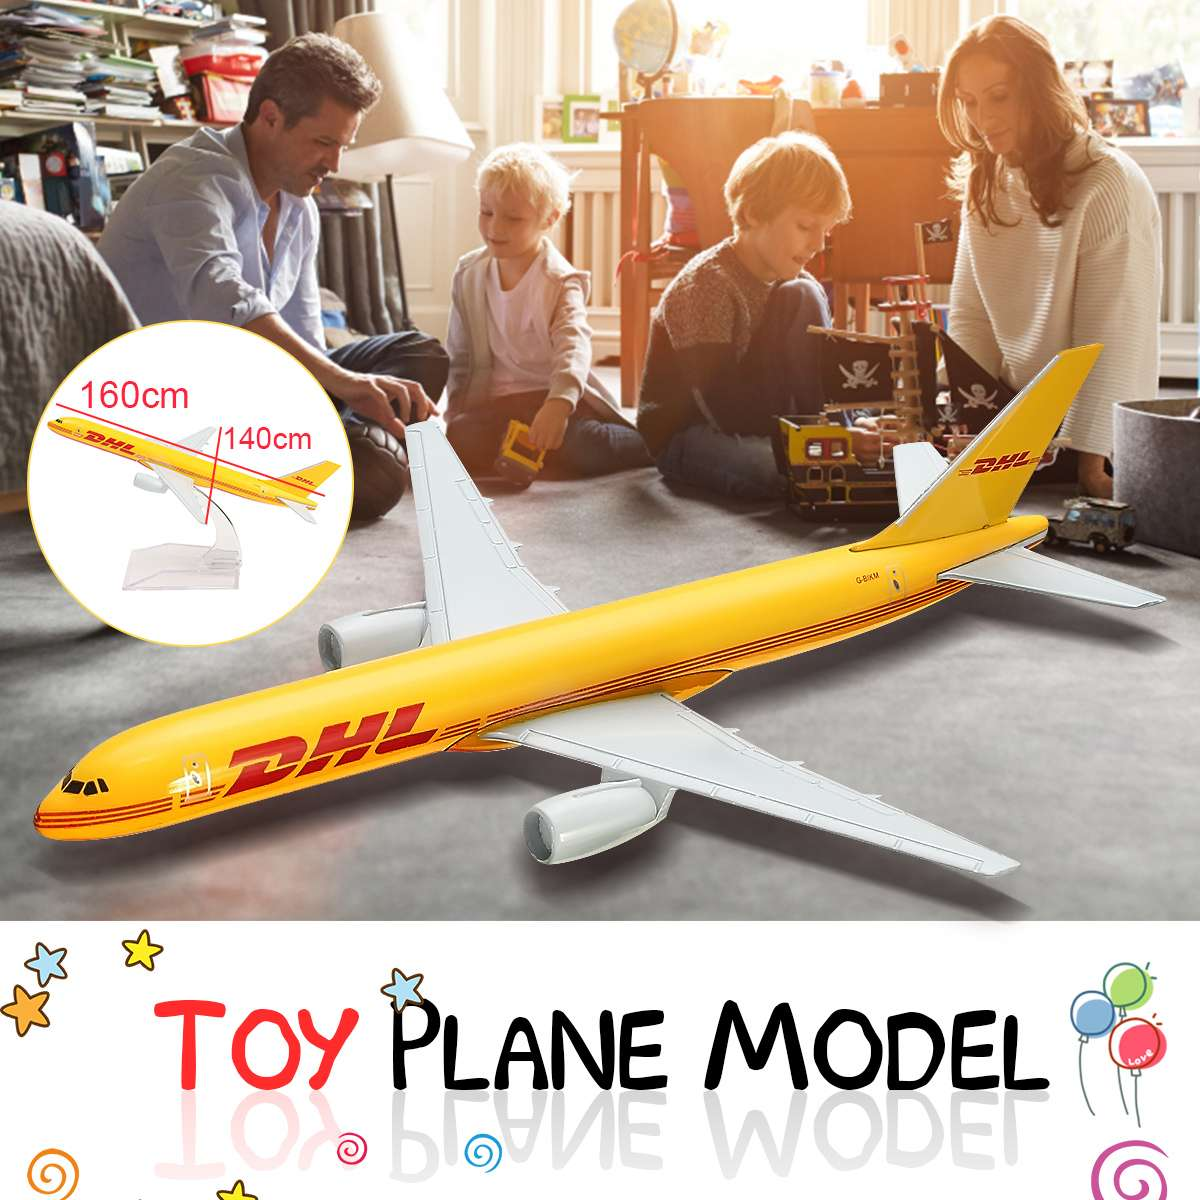 Airplane 16cm Metal Plane Model 1:400 Aircraft B757 DHL Kargo Aeroplane Scale Desk Diecast Alloy Toys image